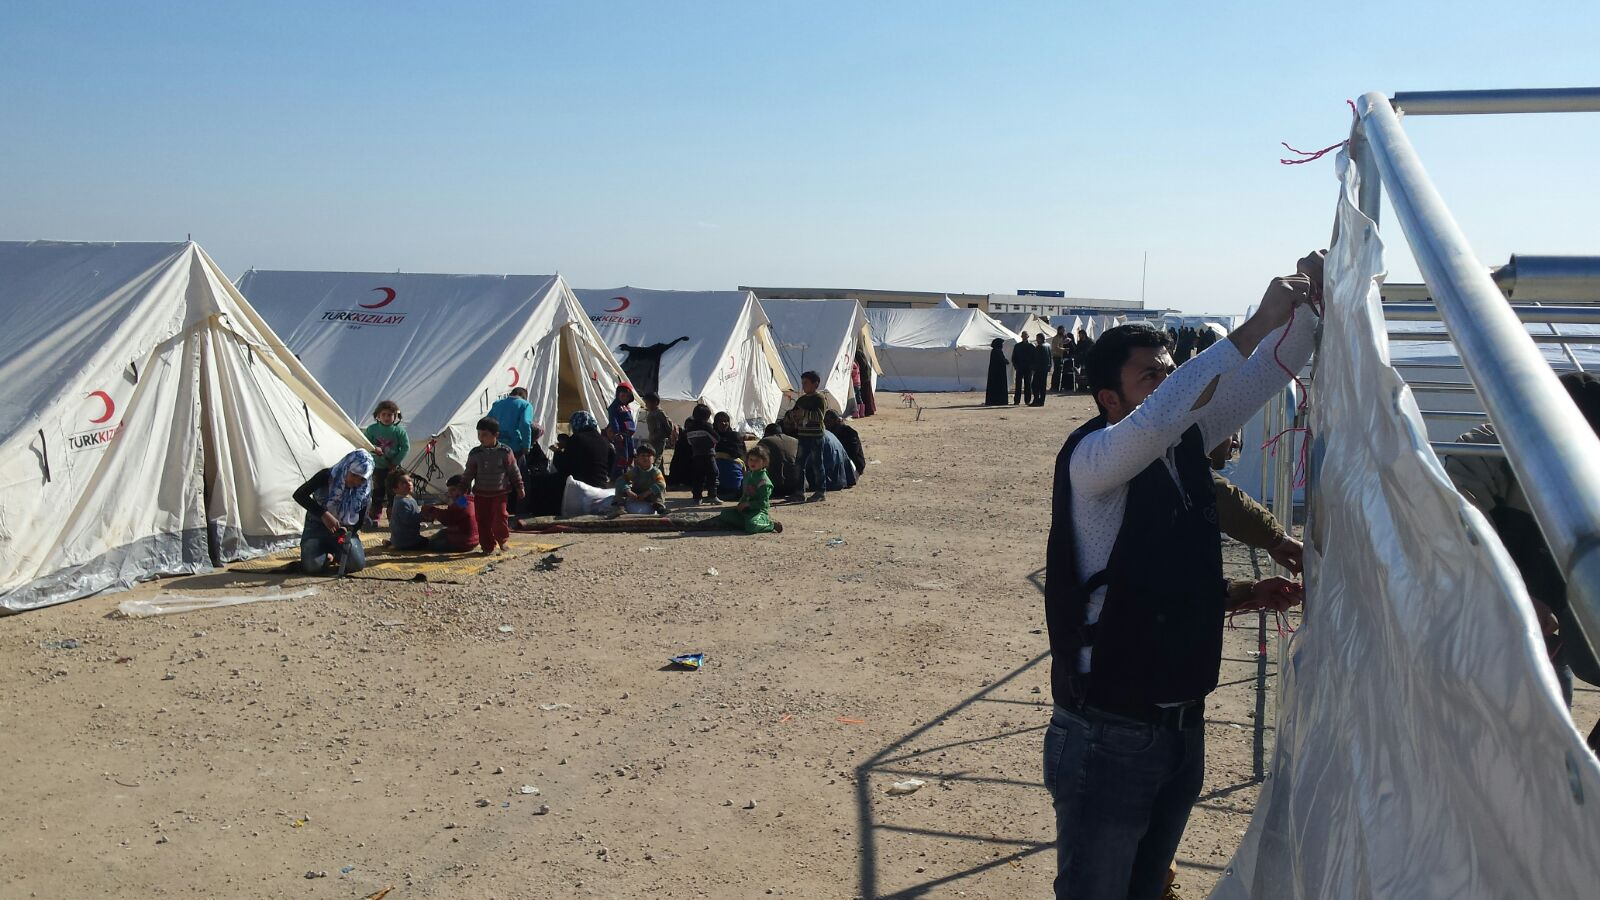 Malteser International's Syrian partner erected 225 family tents to give the fleeing people shelter.